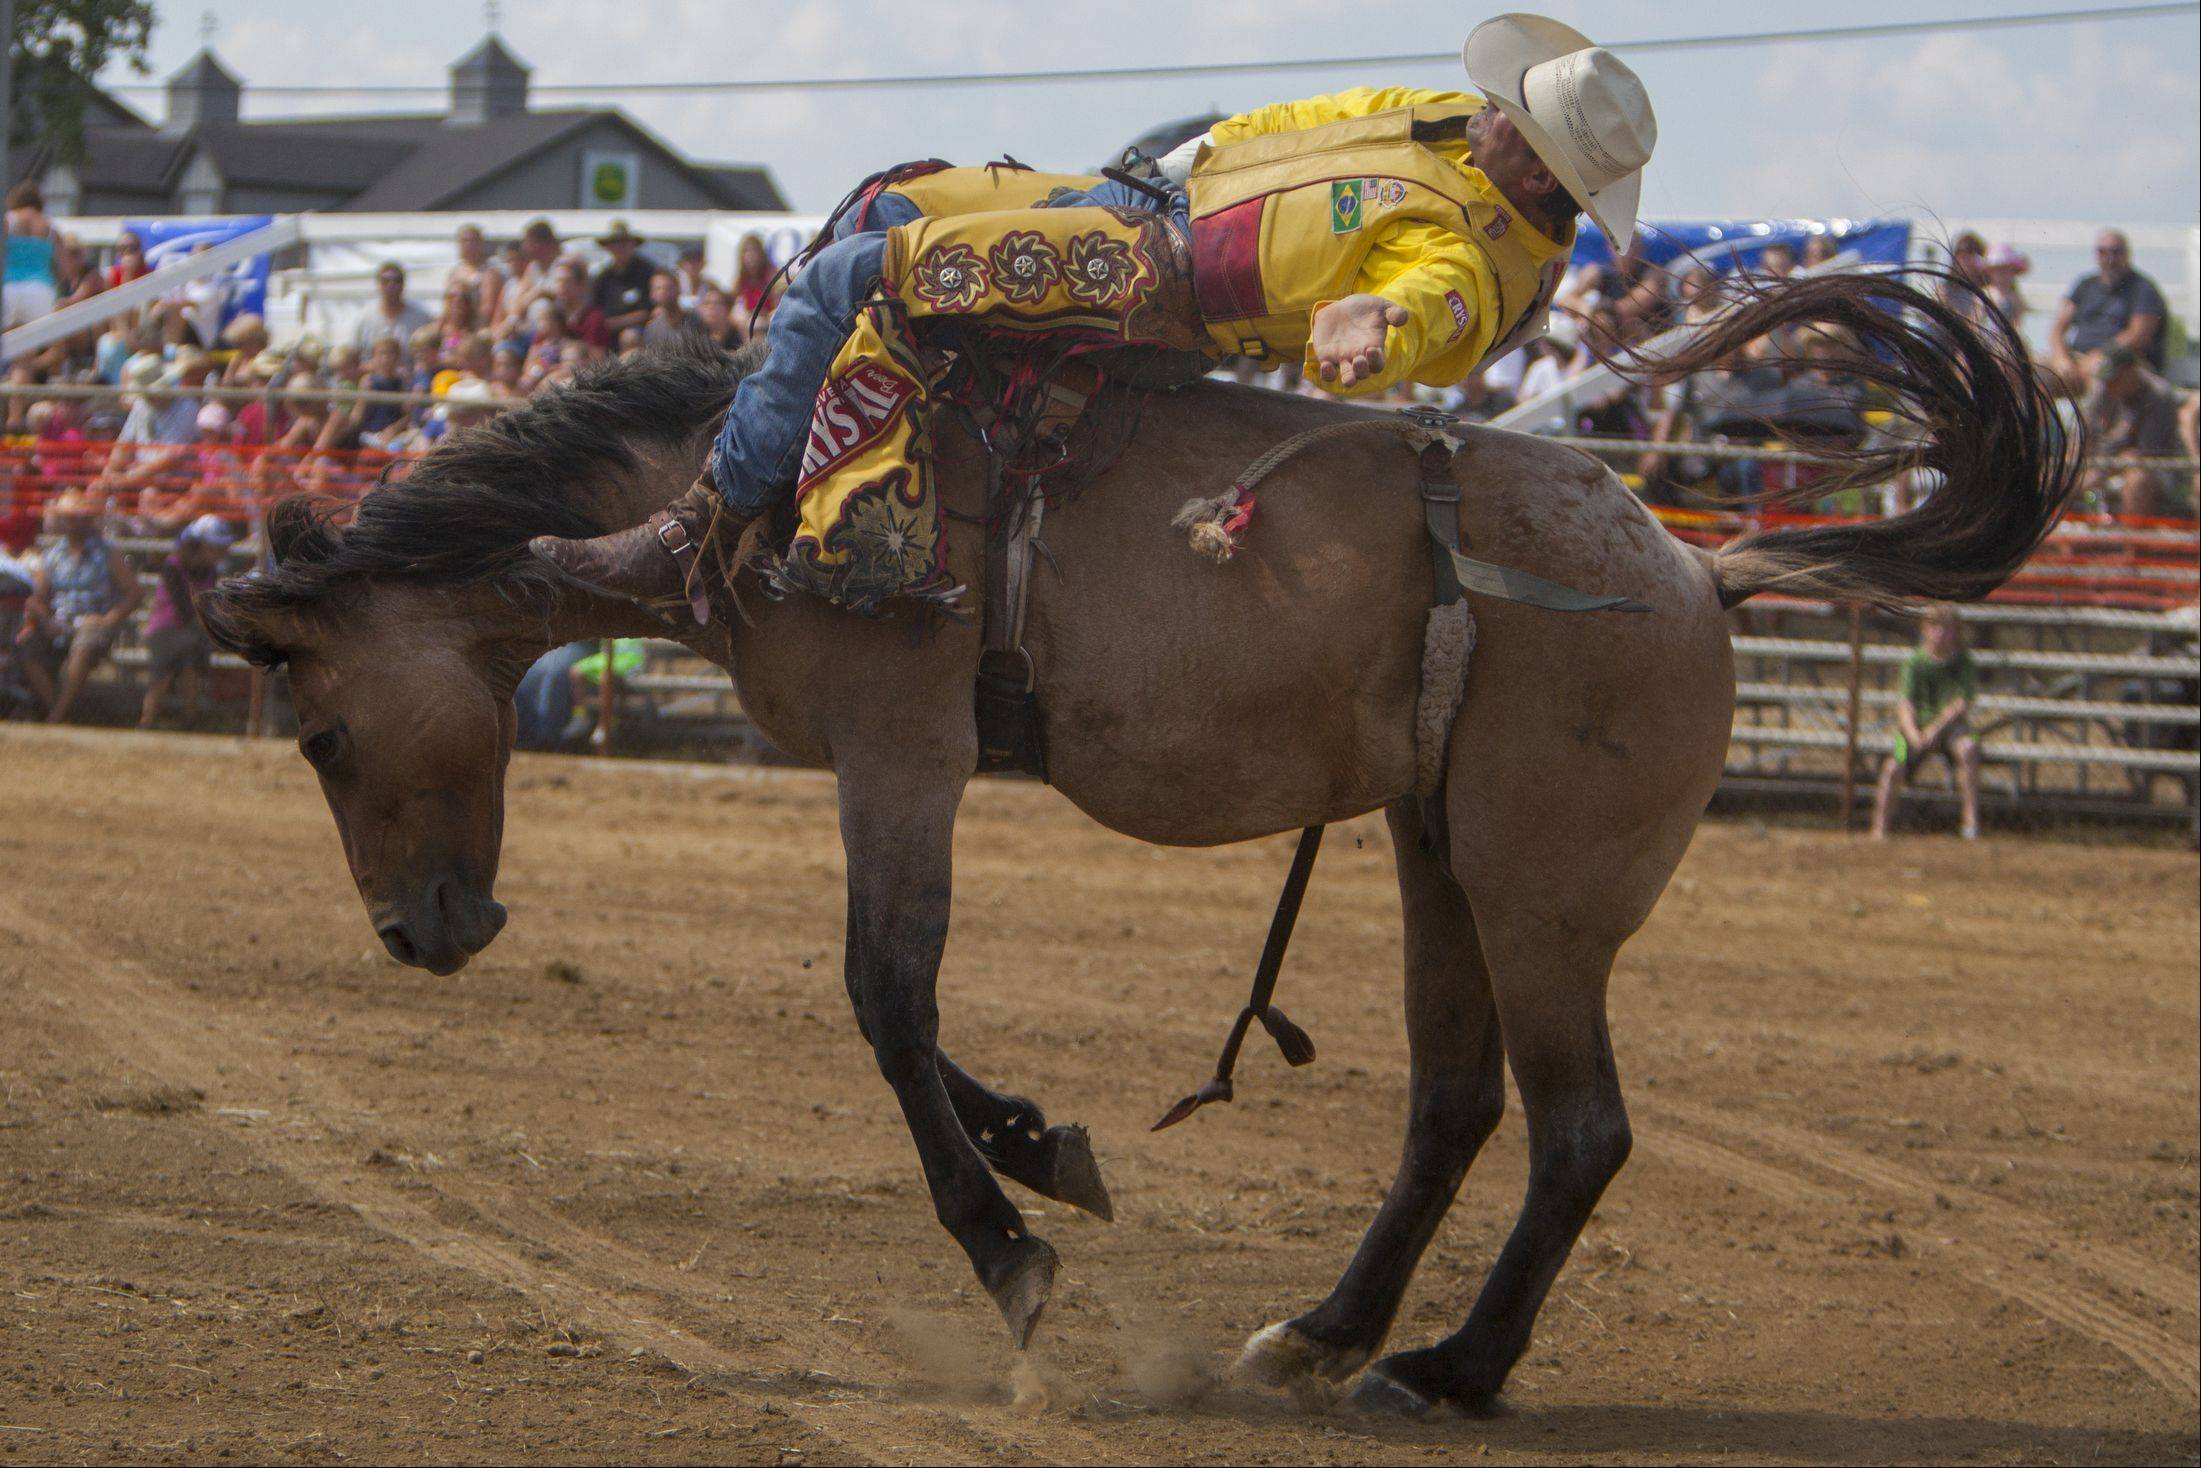 Luiz Morera competes in the bareback riding event at last year's Wauconda rodeo.